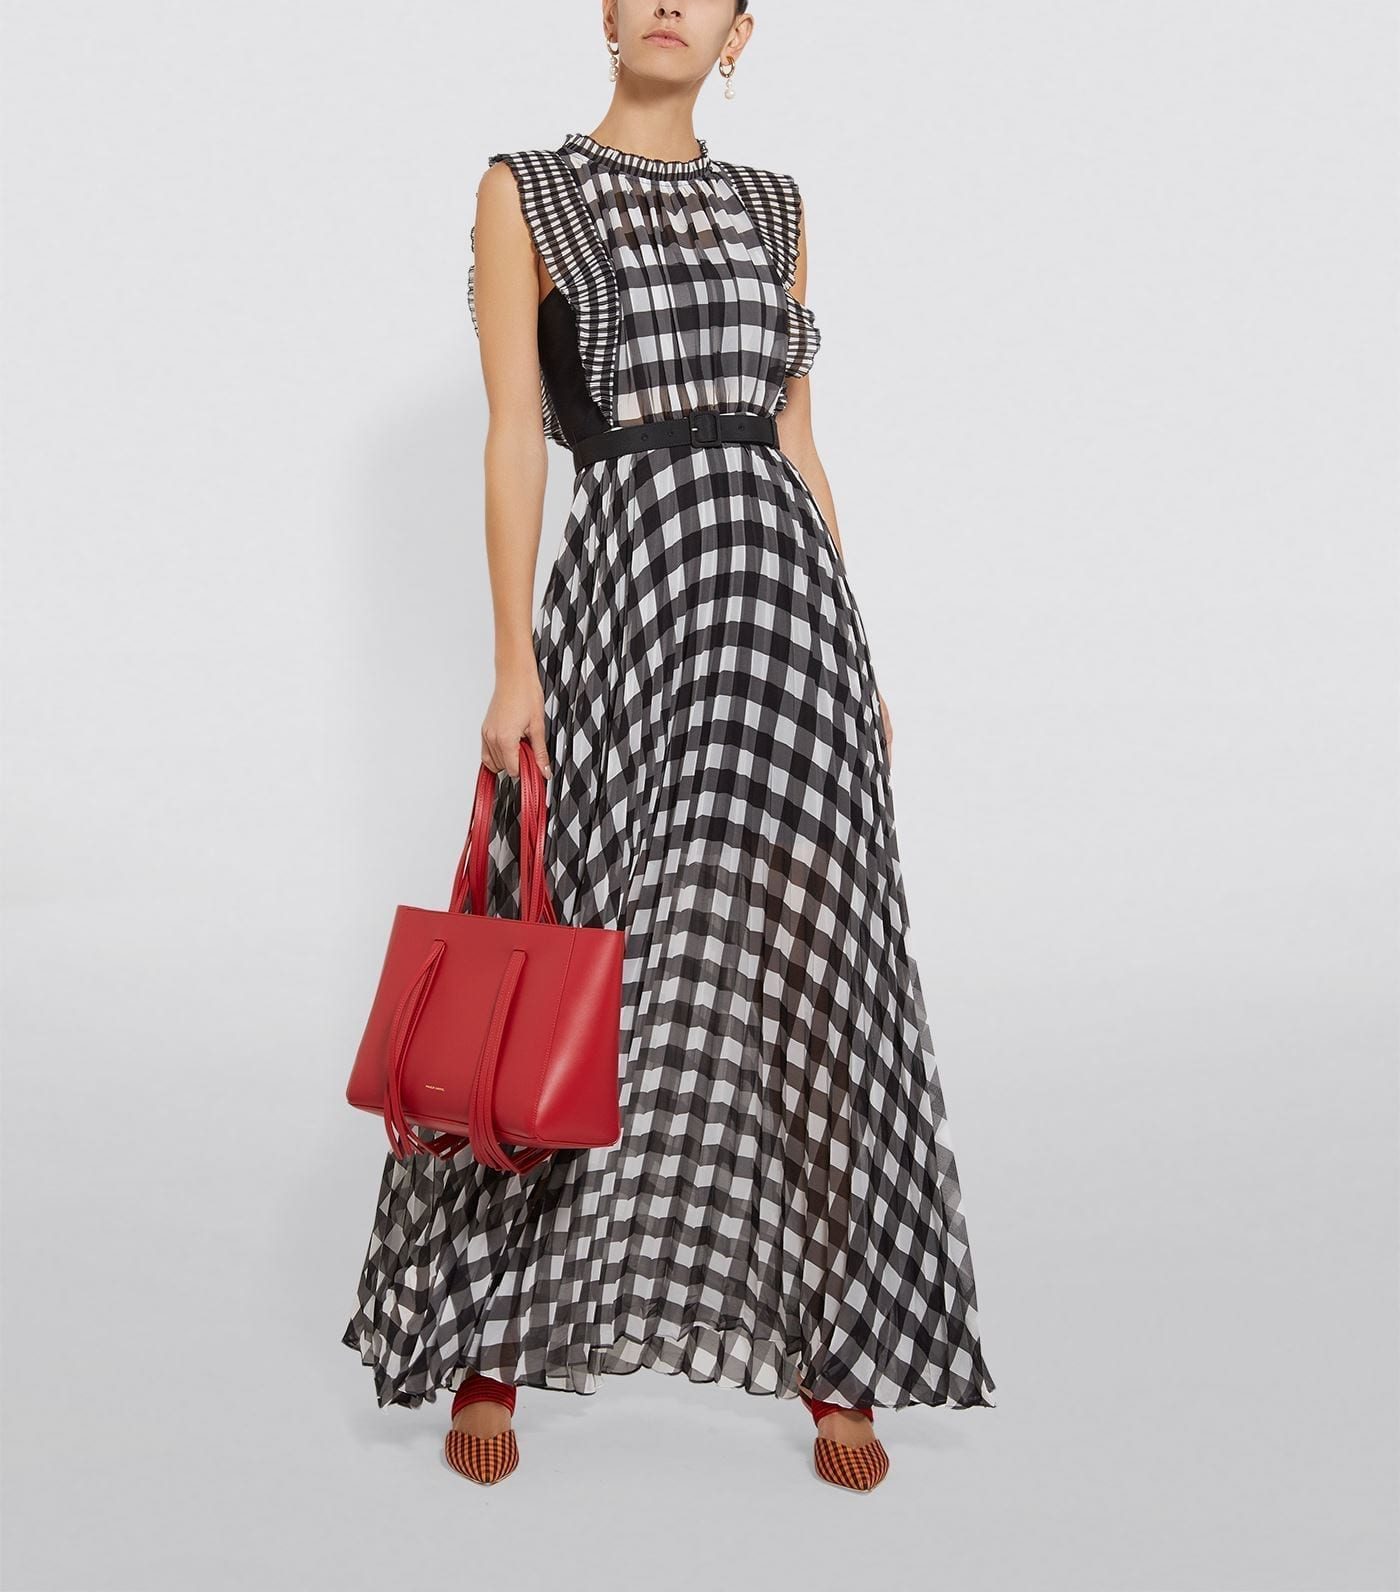 SELF-PORTRAIT Chiffon Gingham Dress